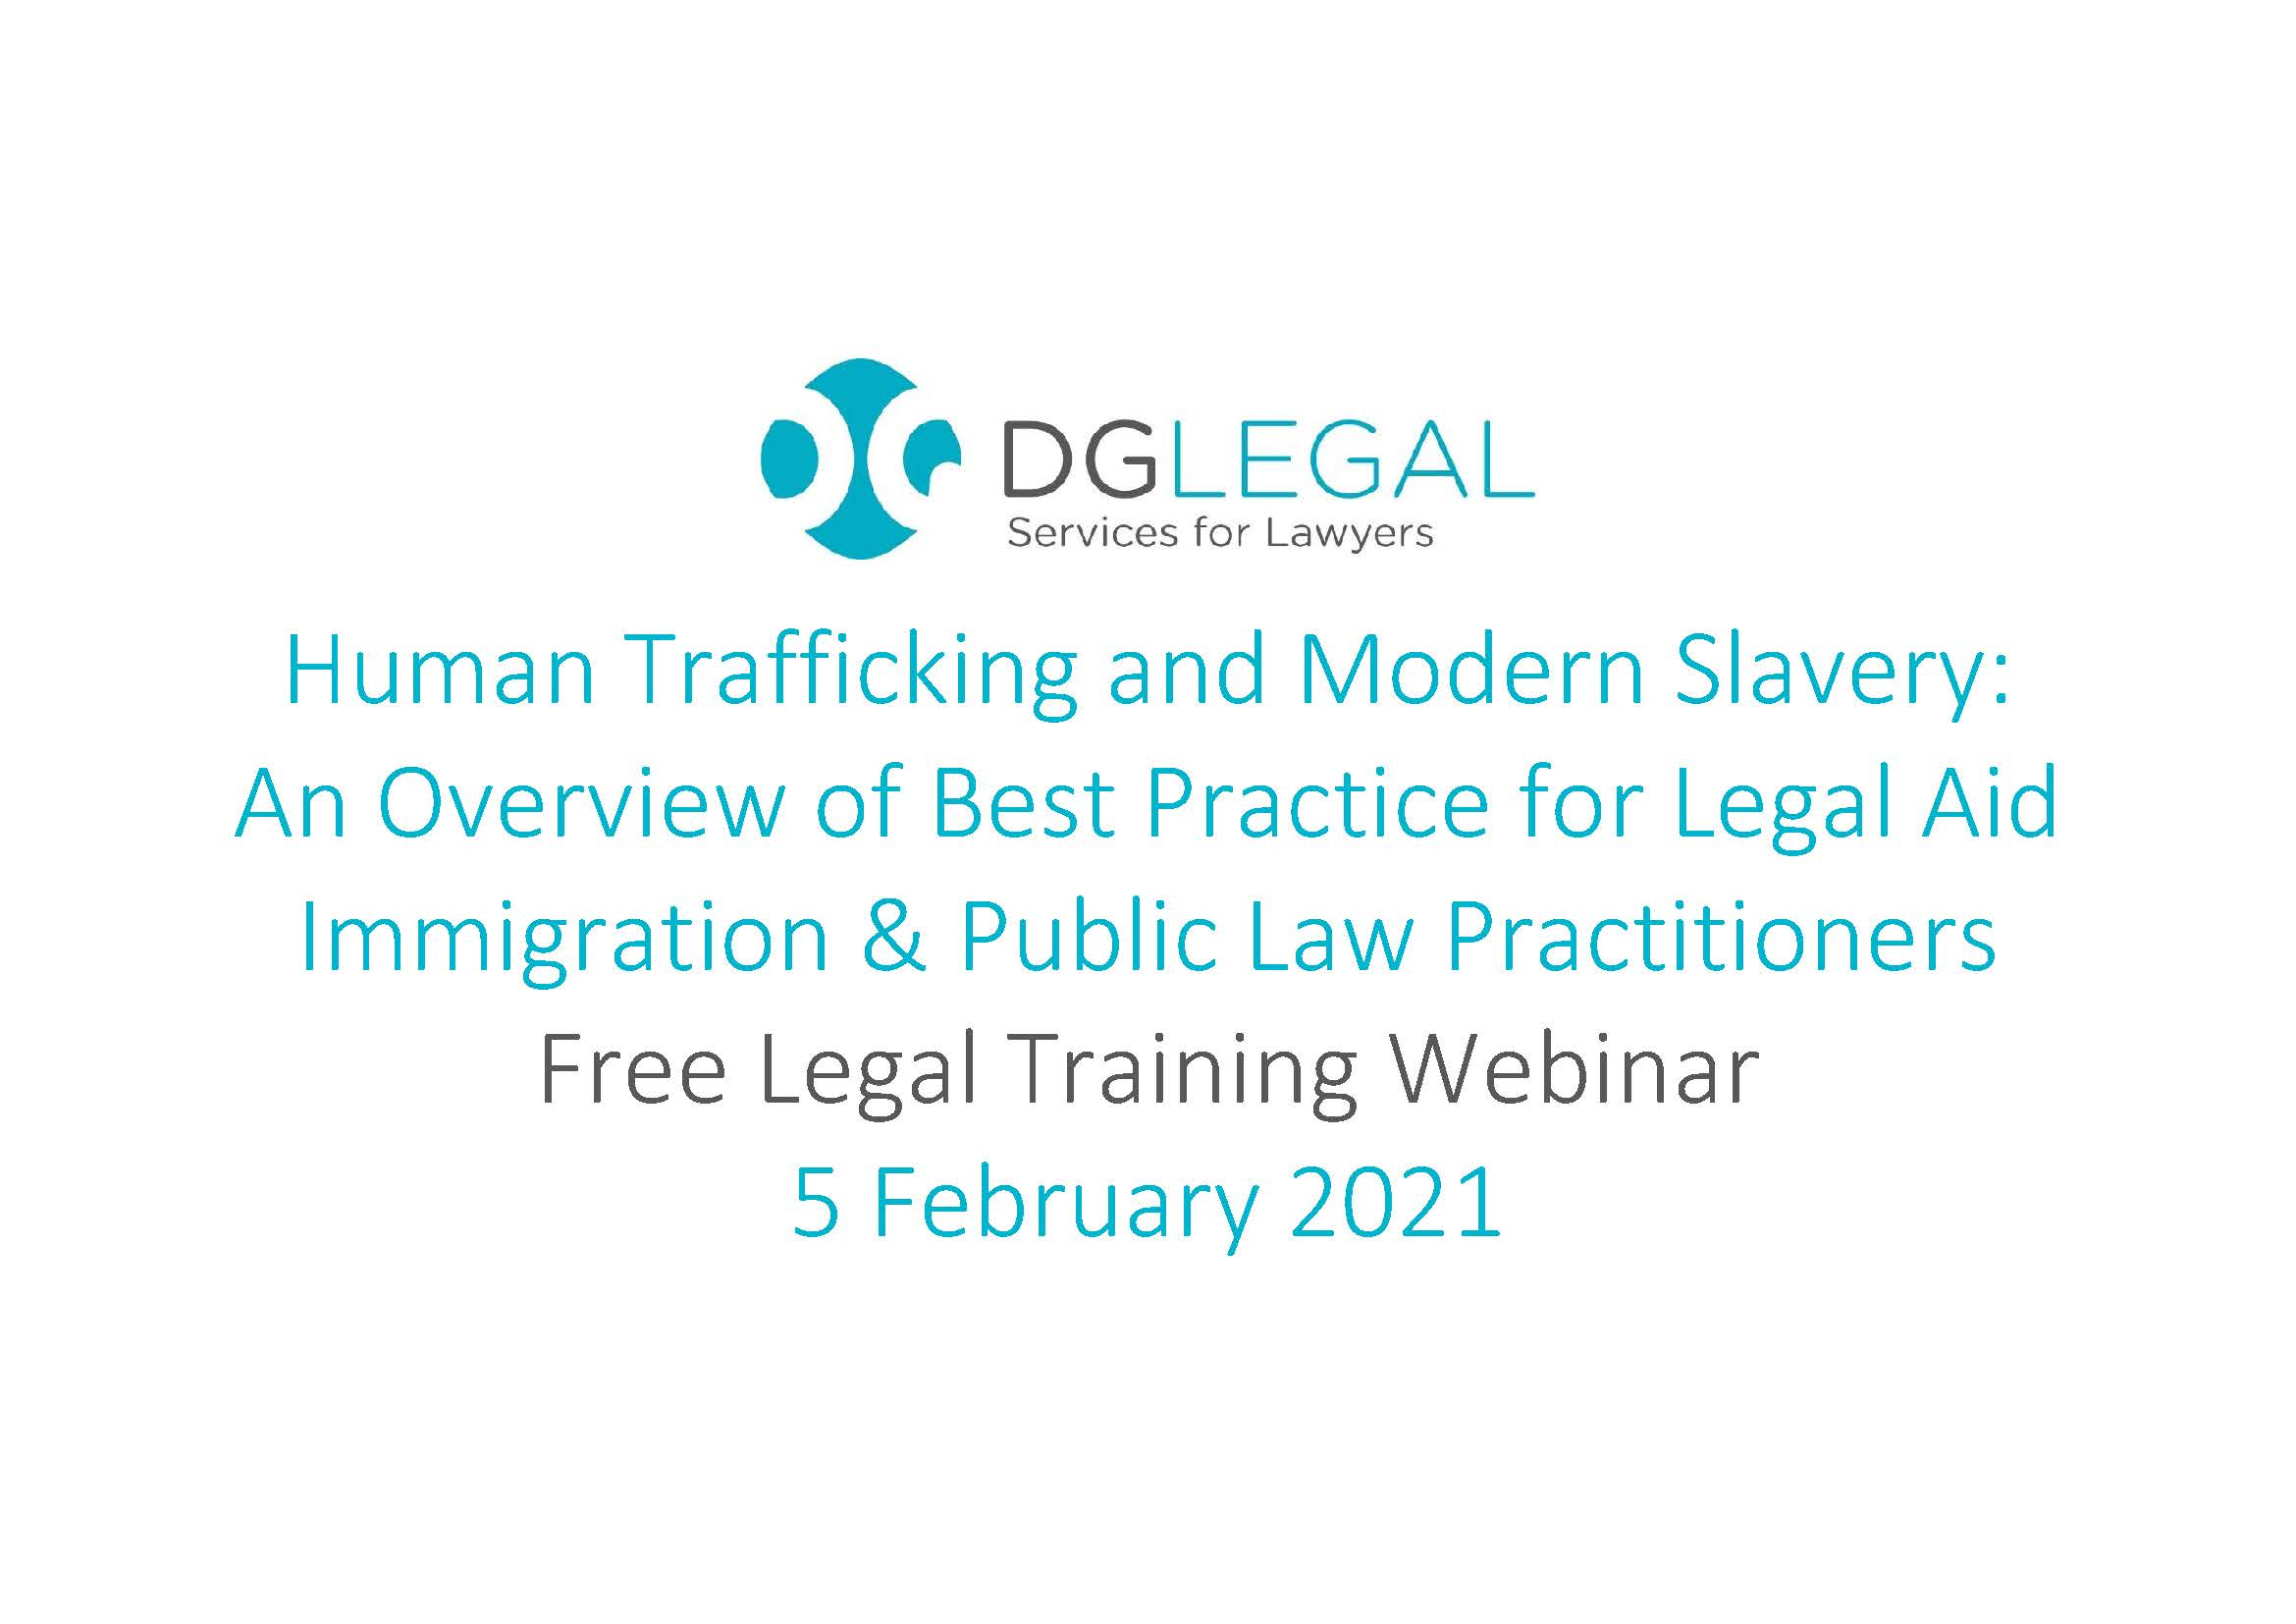 Human Trafficking and Modern Slavery - An Overview of Best Practice for Legal Aid Immigration and Public Law Practitioners